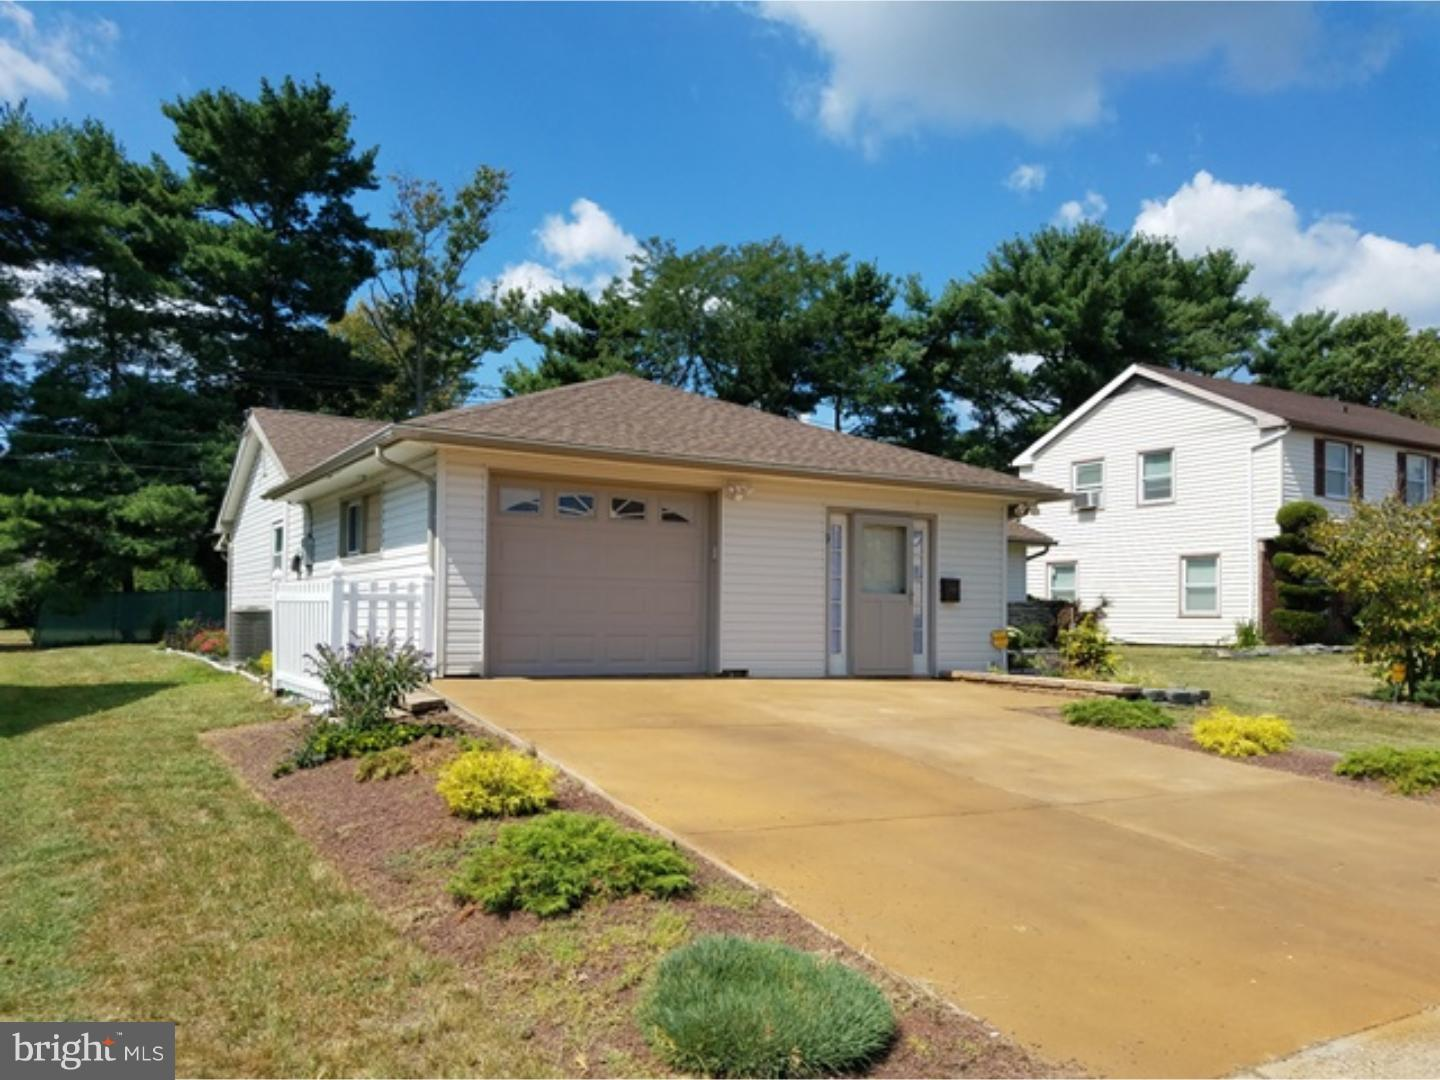 Single Family Home for Sale at 9 BLUEBERRY Lane Willingboro Township, New Jersey 08046 United States